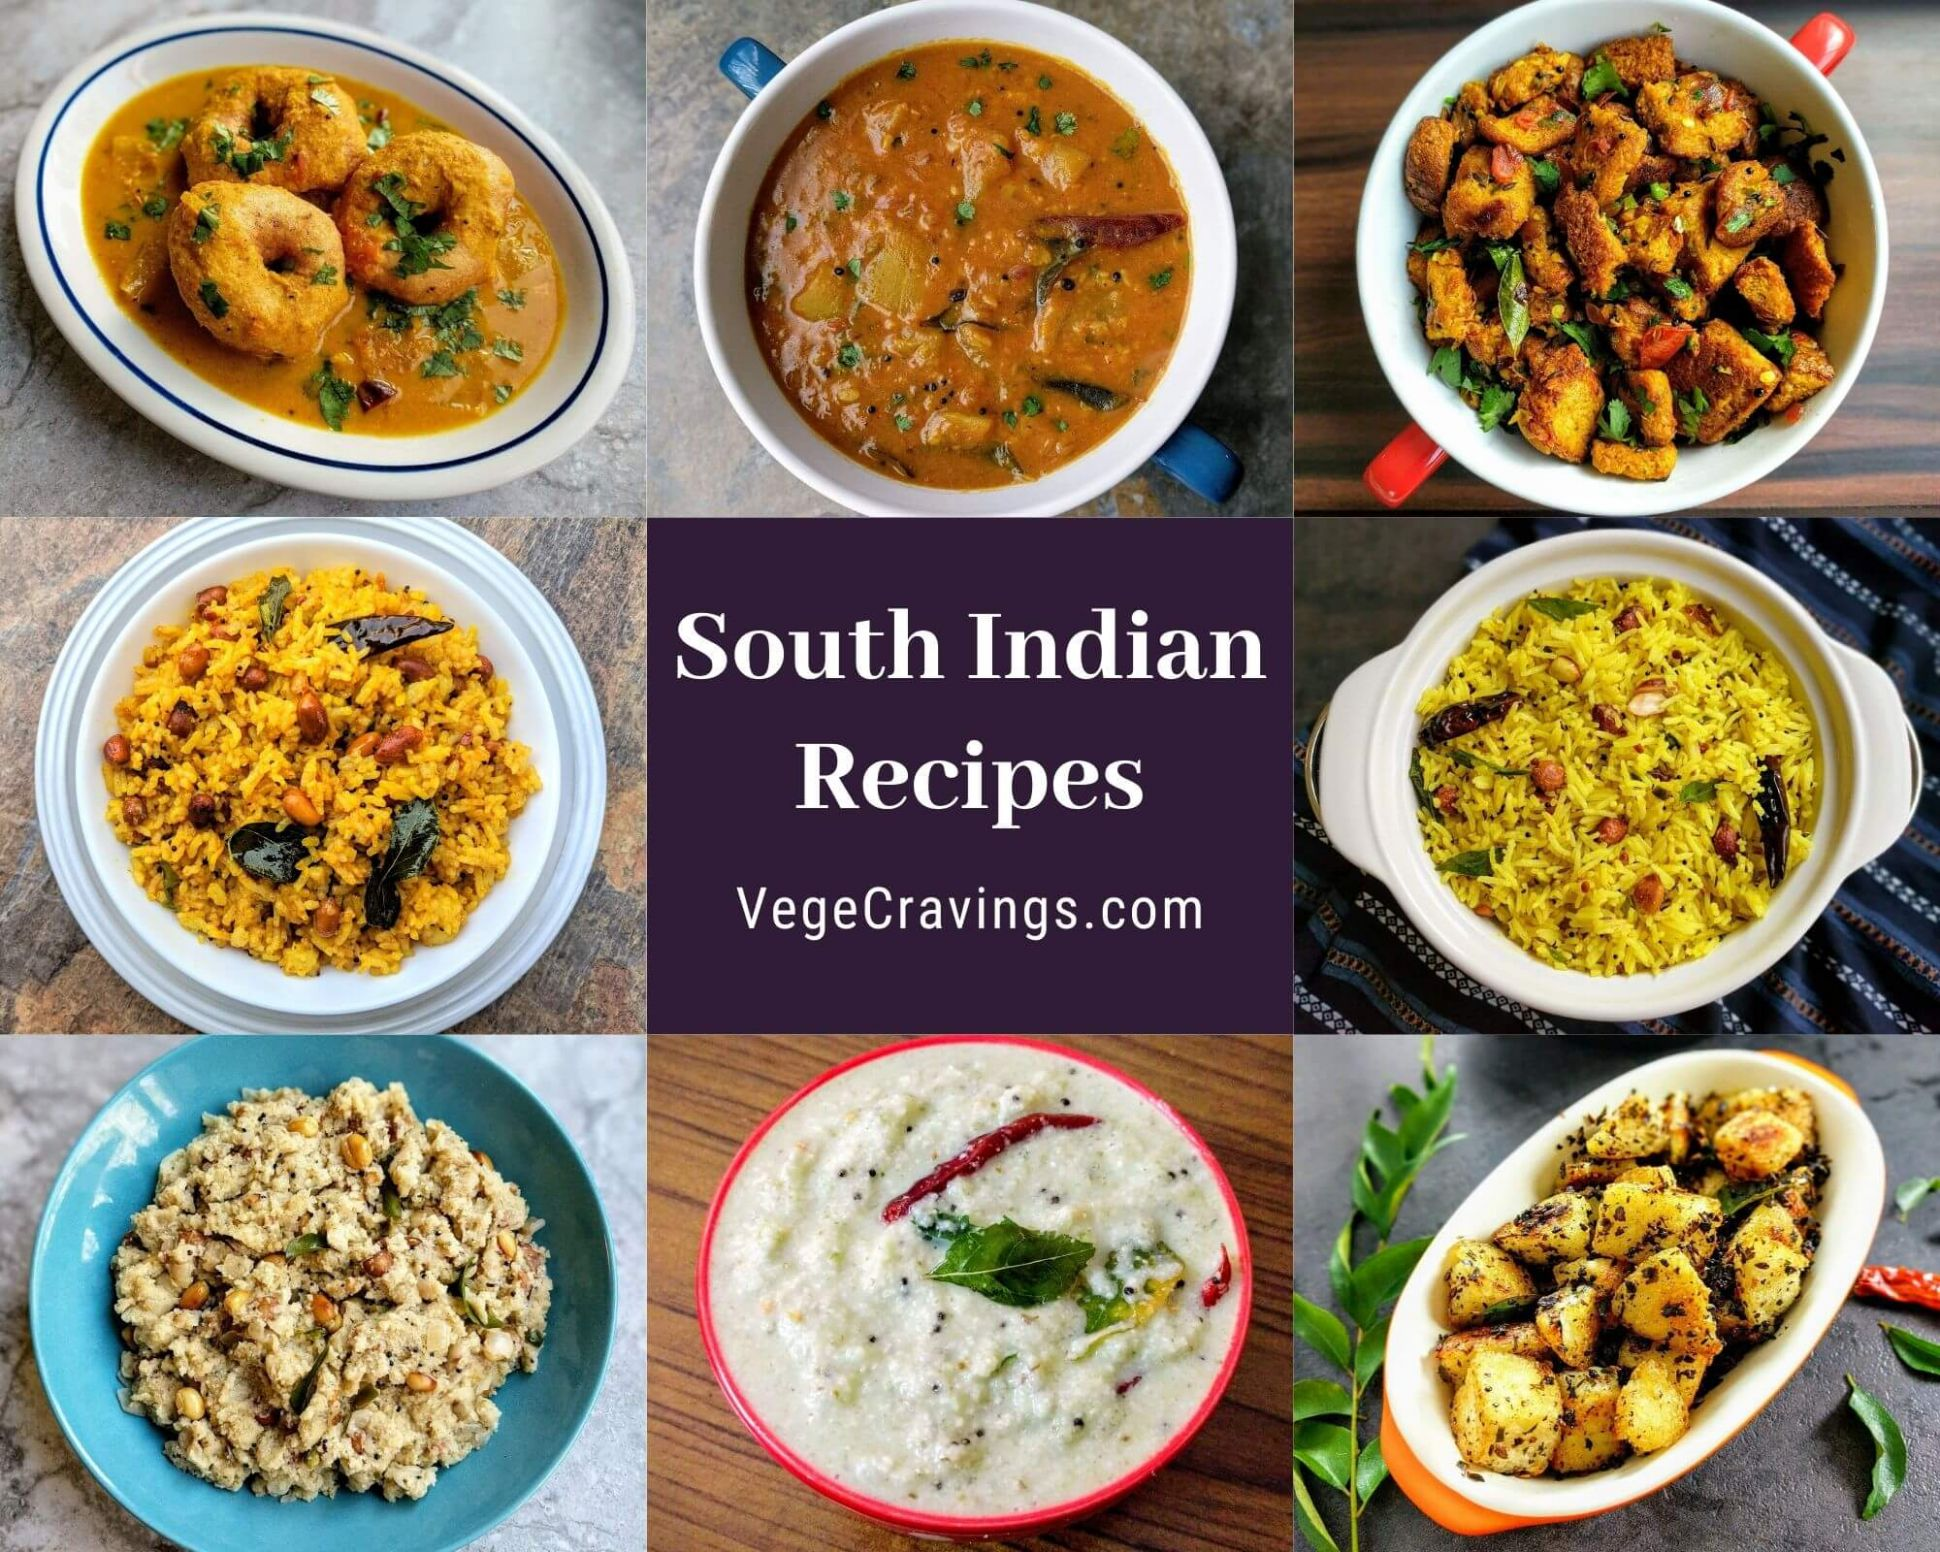 South Indian Recipes | 12 Delicious South Indian Dishes | VegeCravings